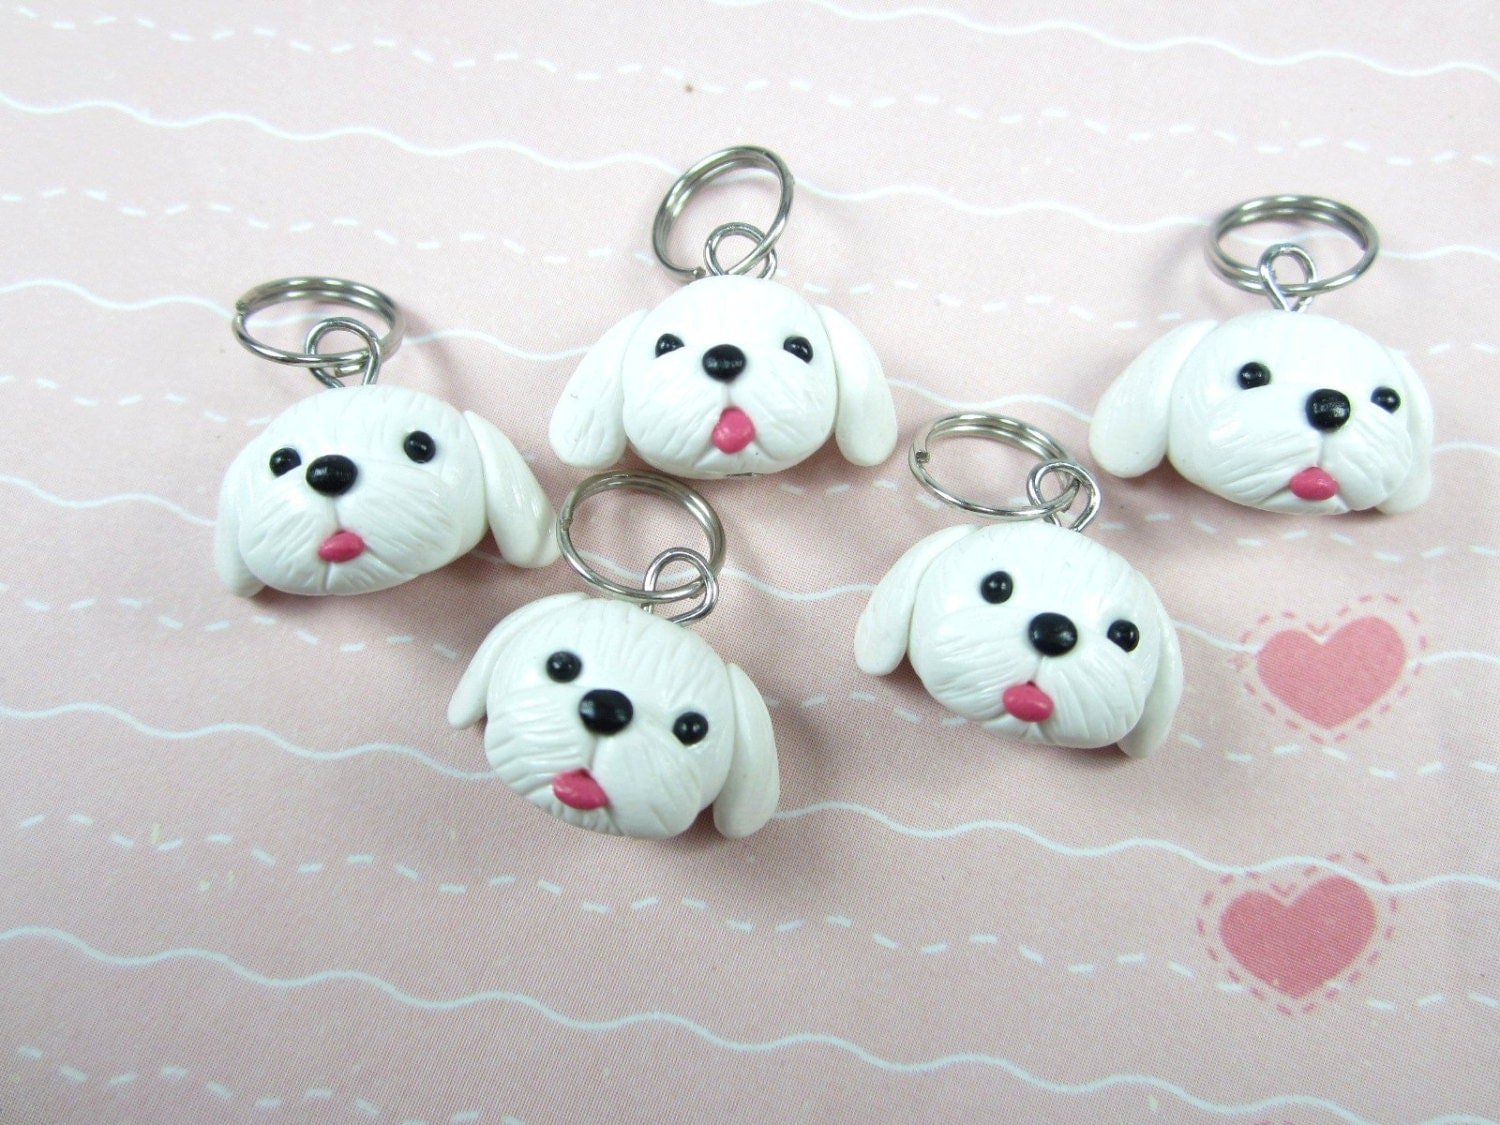 Maltese Dog Knitting Pattern : Maltese dog Stitch markers set of 5 polymer clay dog knitting